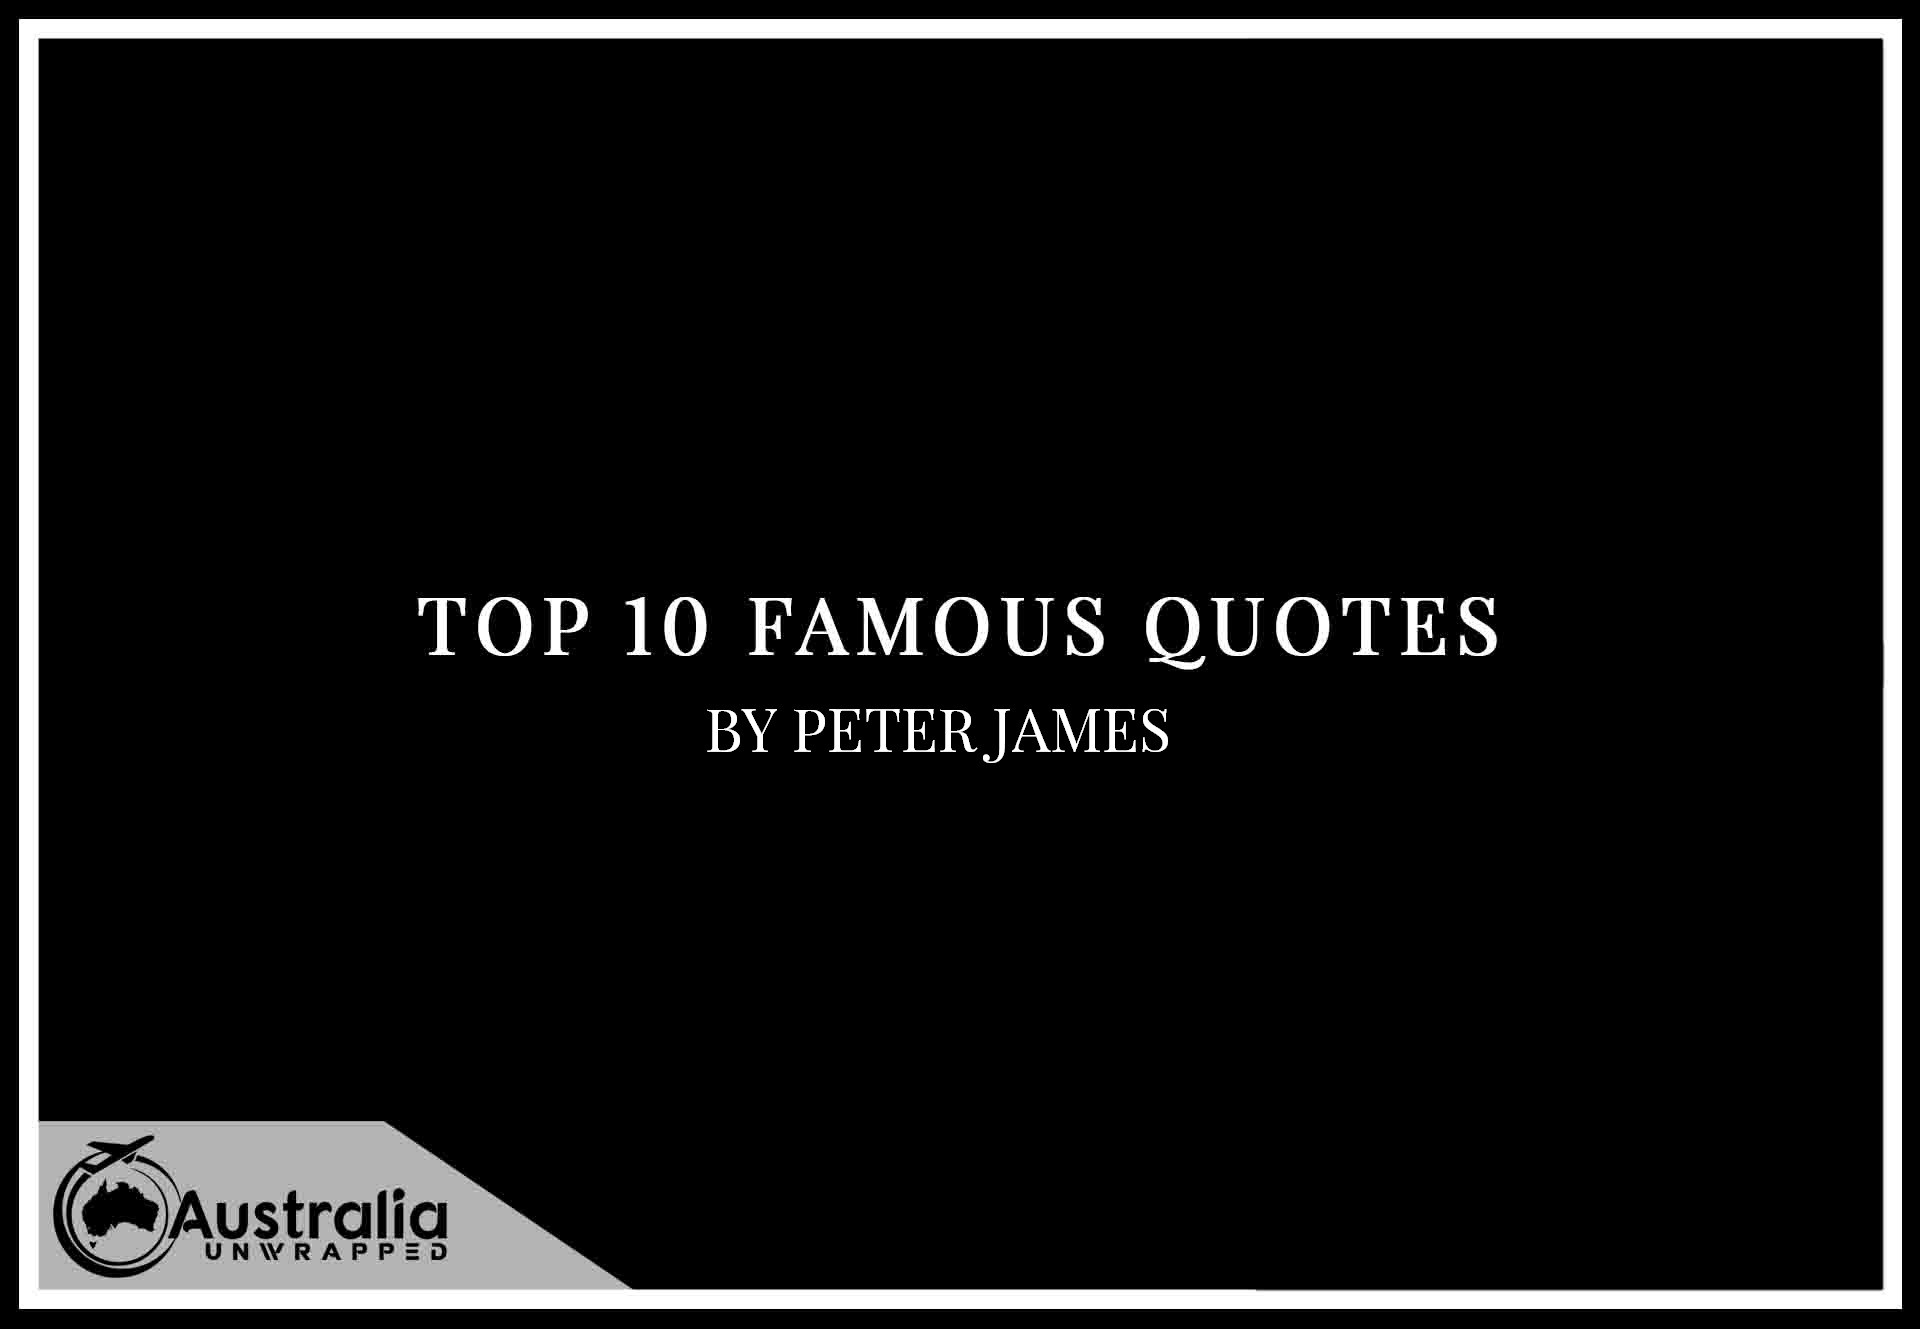 Top 10 Famous Quotes by Author Peter James